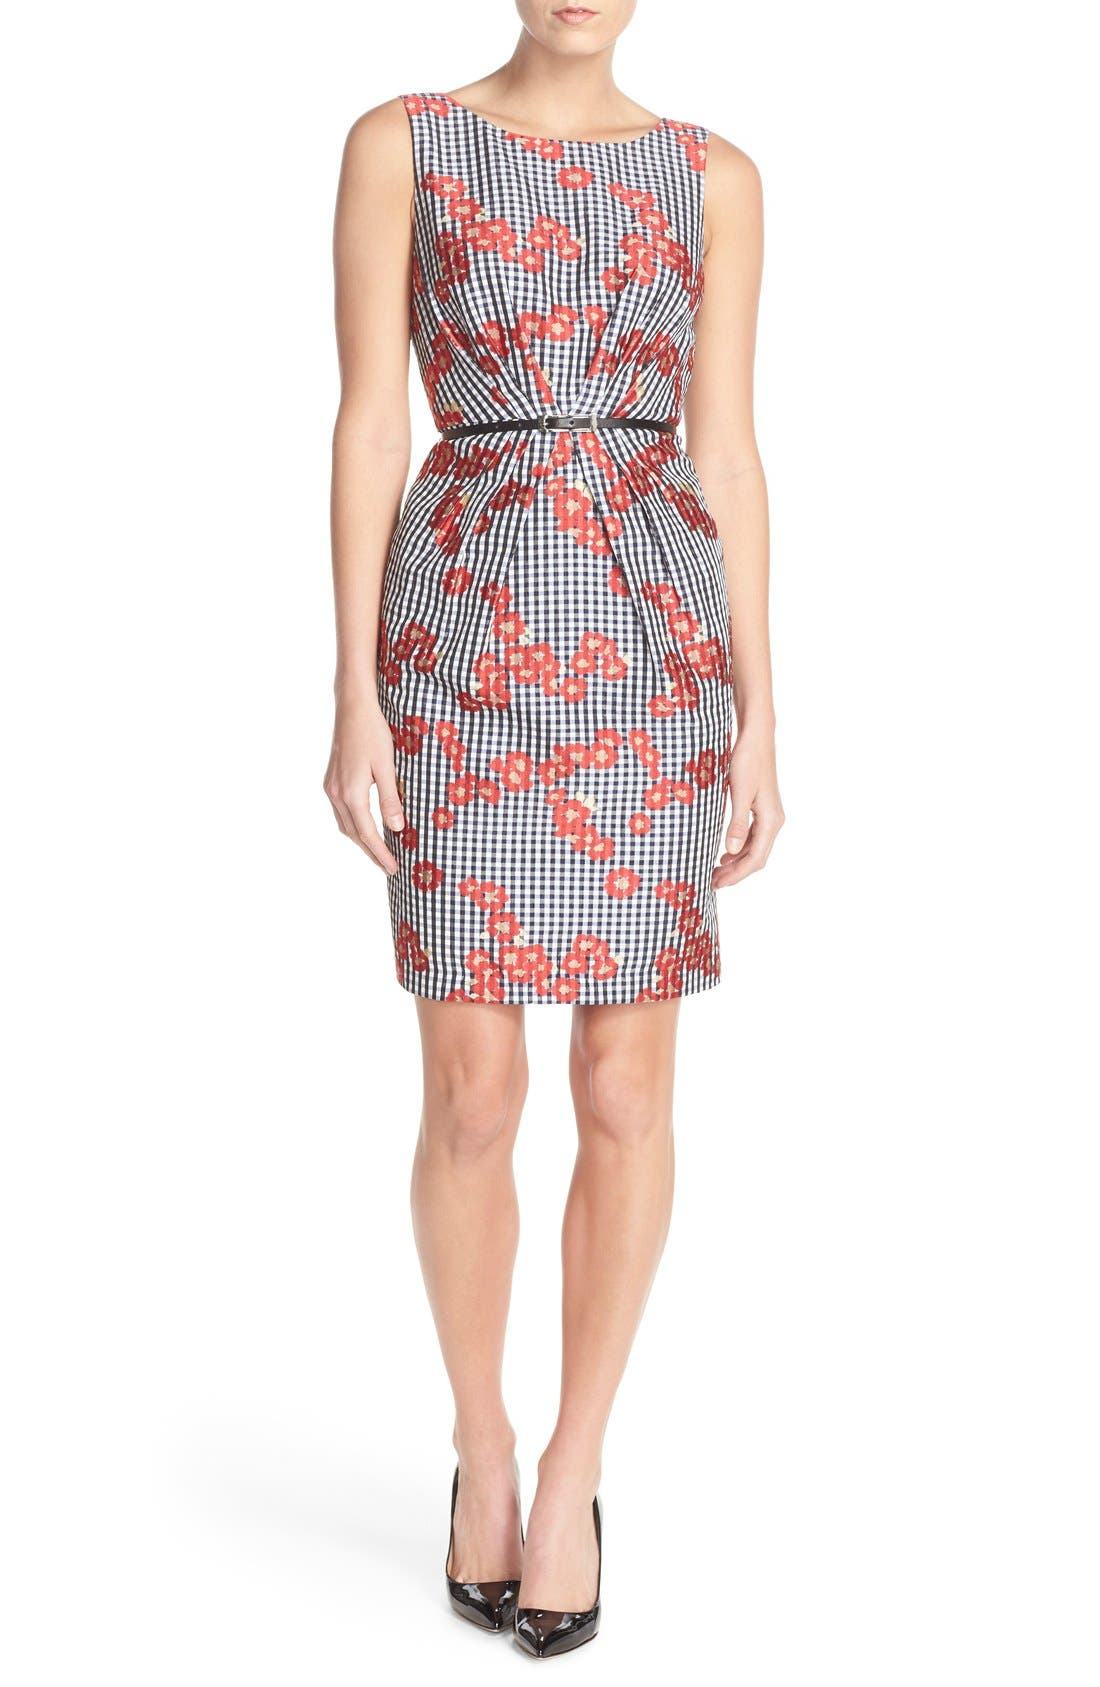 Main Image - Adrianna Papell Floral & Gingham Jacquard Sheath Dress (Regular & Petite)